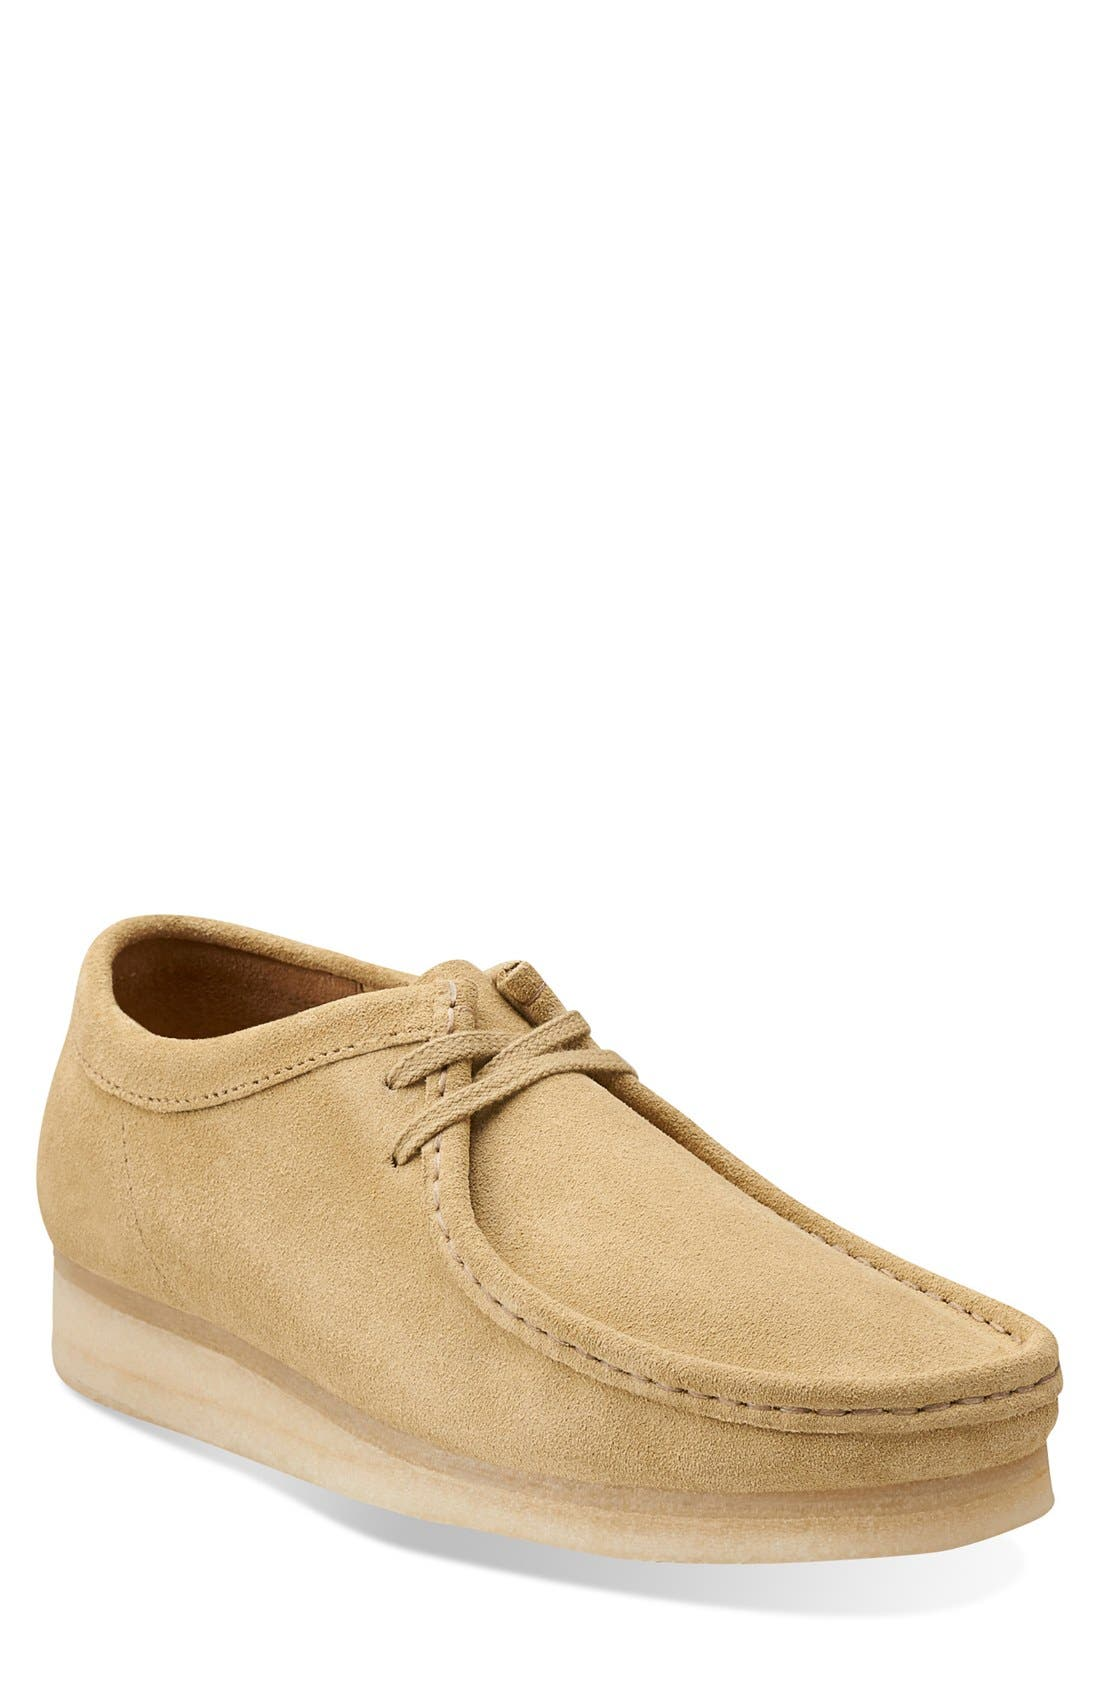 'Wallabee' Moc Toe Derby (Online Only),                             Main thumbnail 1, color,                             Maple Suede